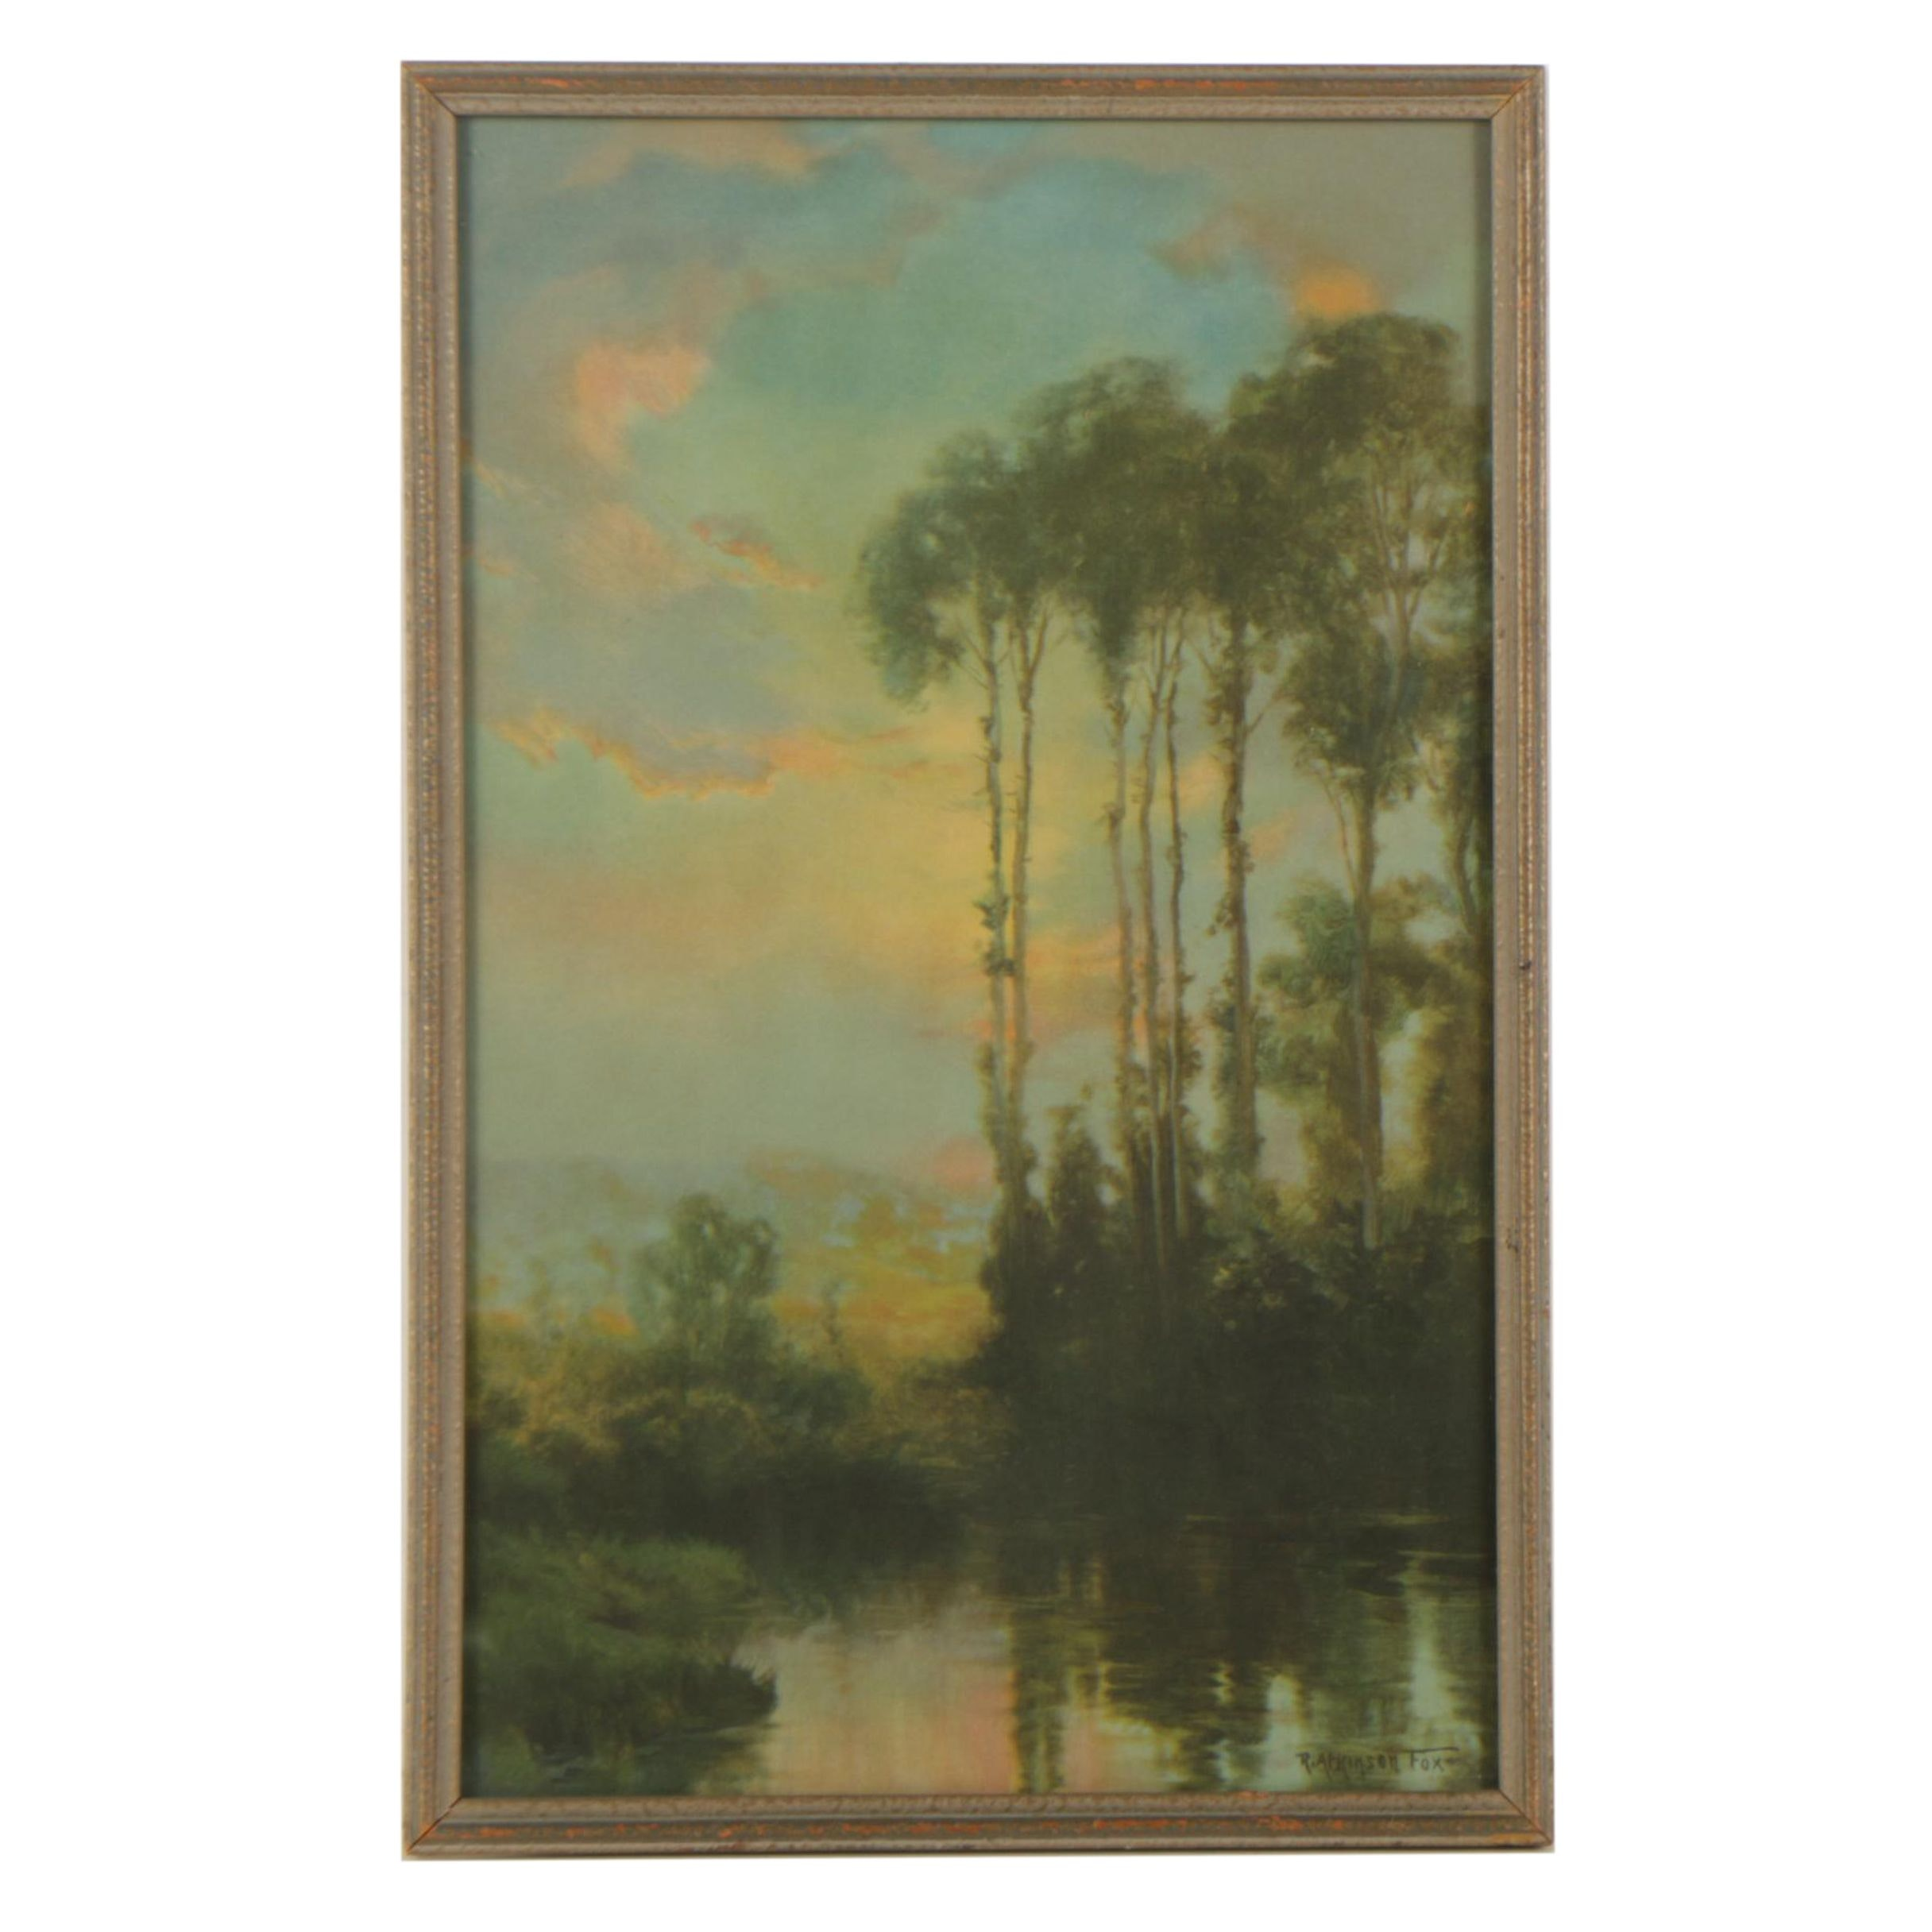 Circa 1920s Offset Lithograph After Robert Atkinson Fox Sunrise Landscape